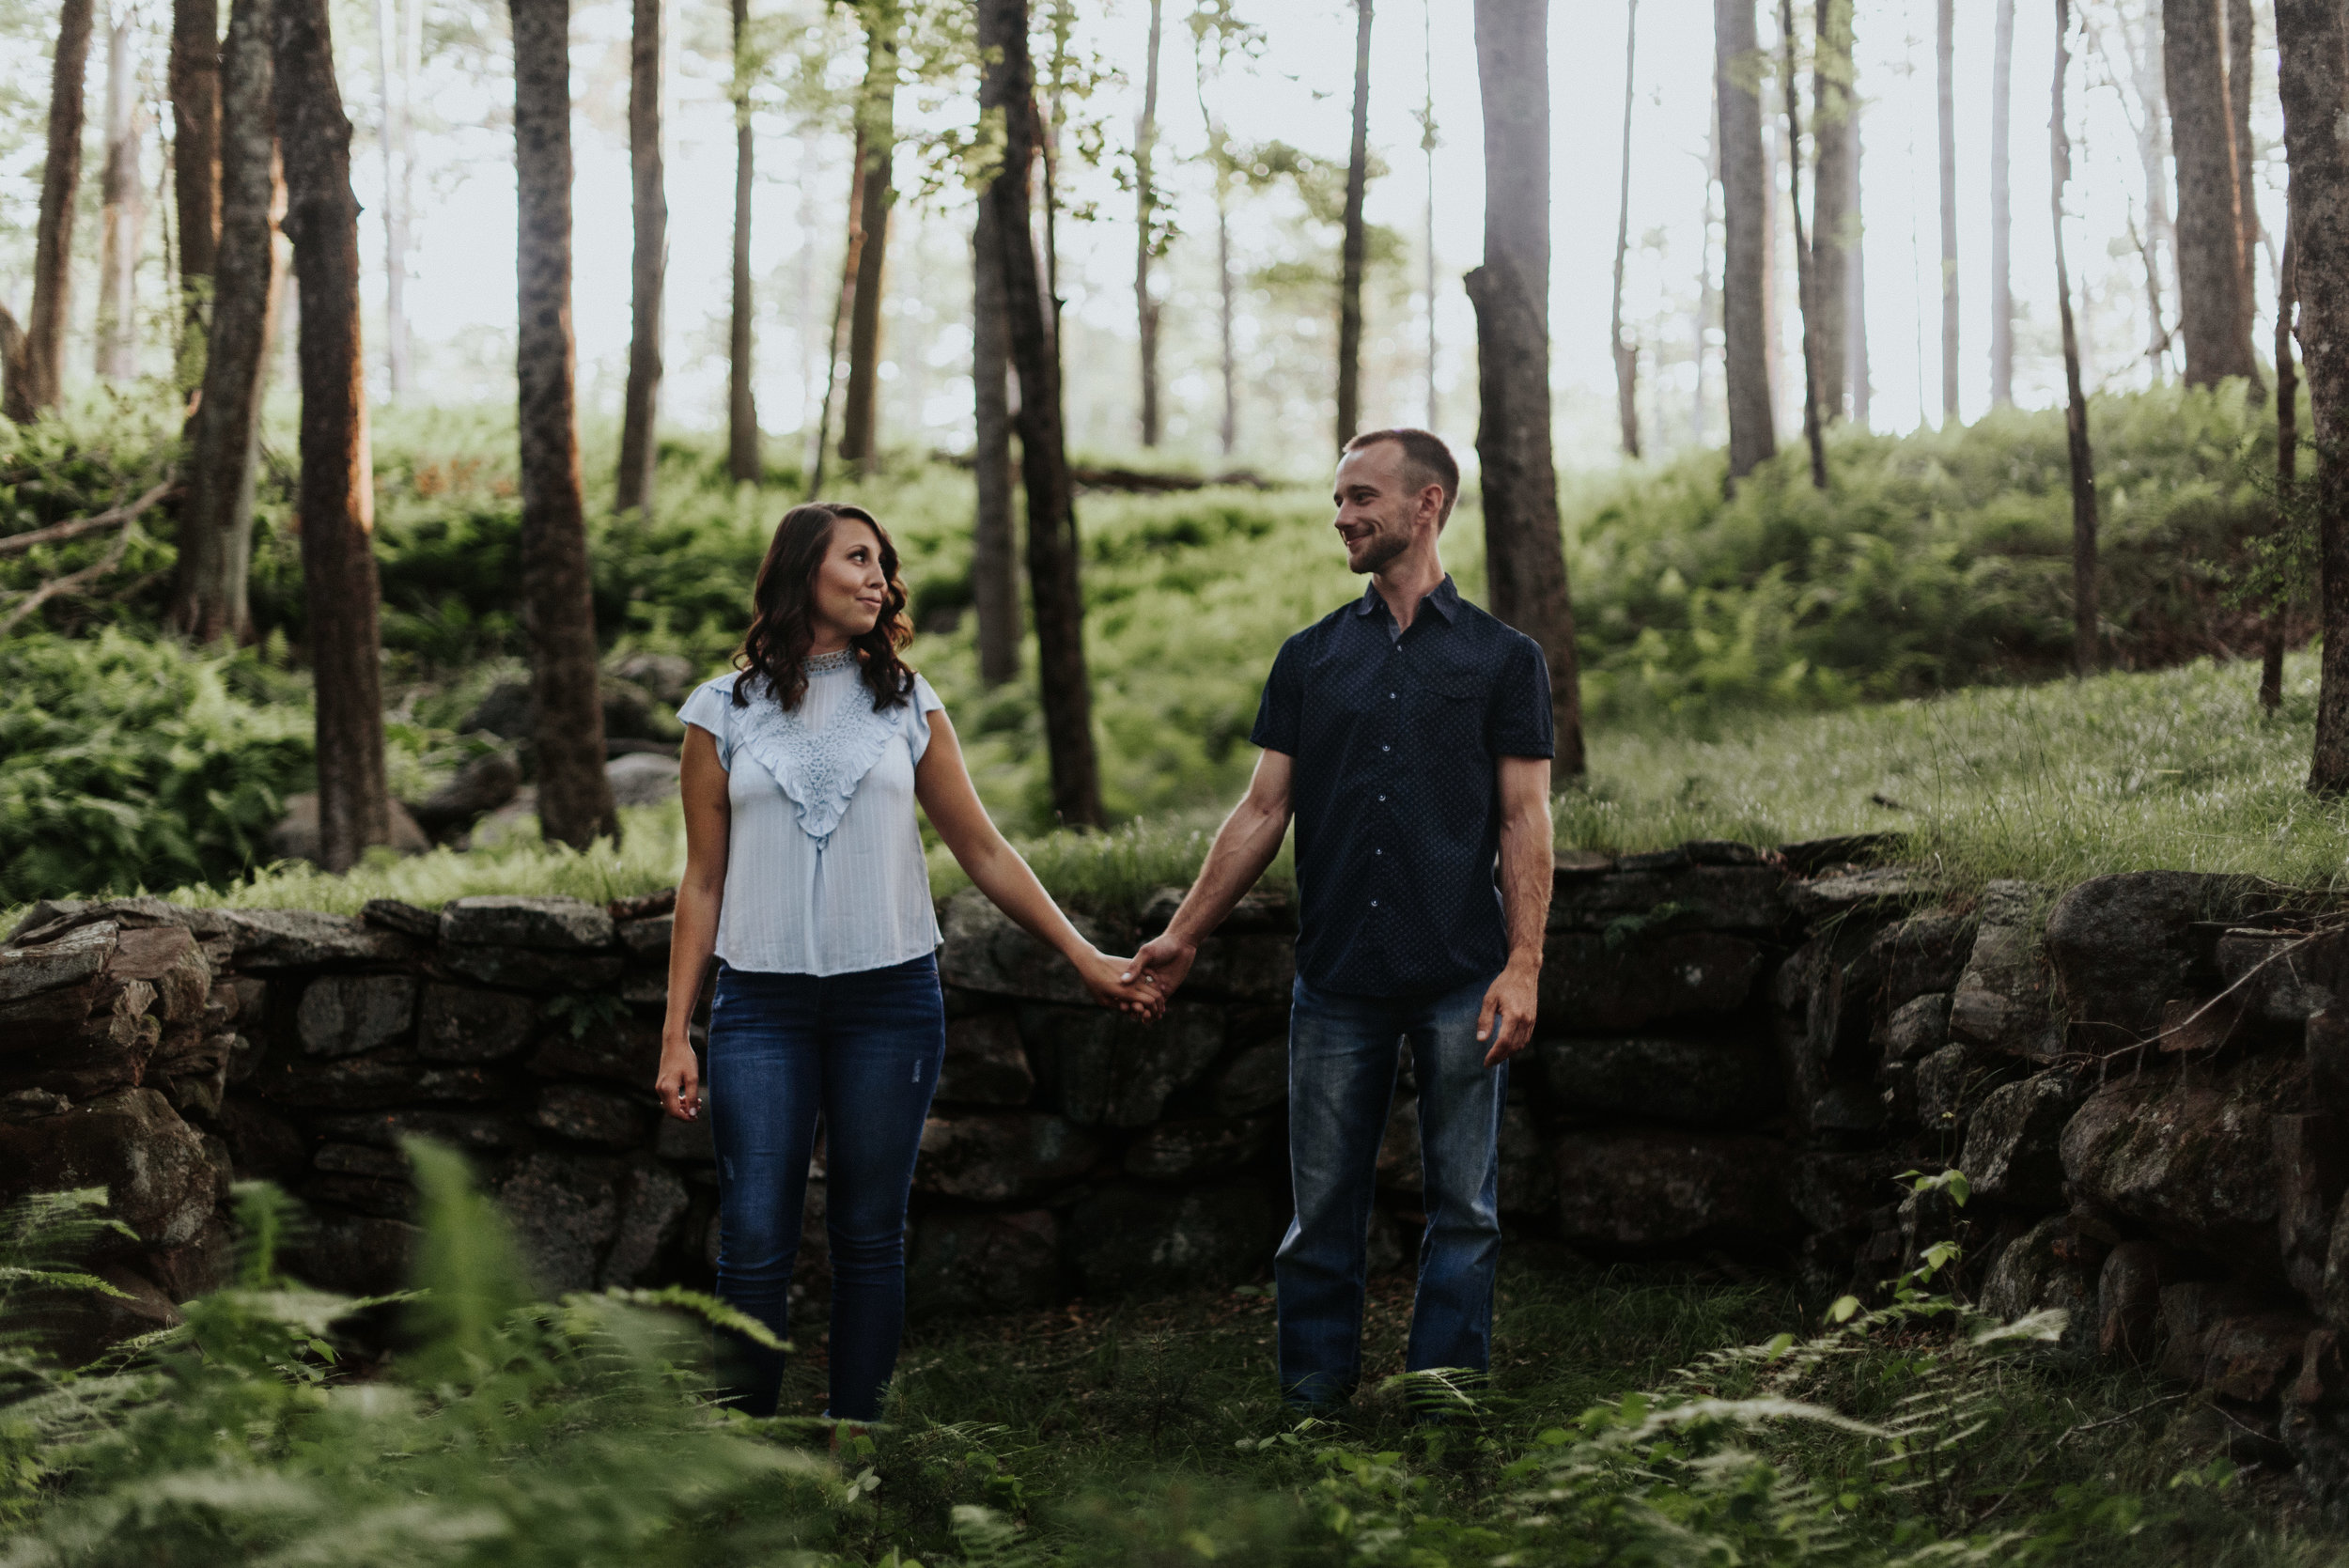 Amanda & Sean-Massachusetts-Forest Waterfront Engagement Session-Woodsy Outdoor Couples Session-Photographer-55.jpg